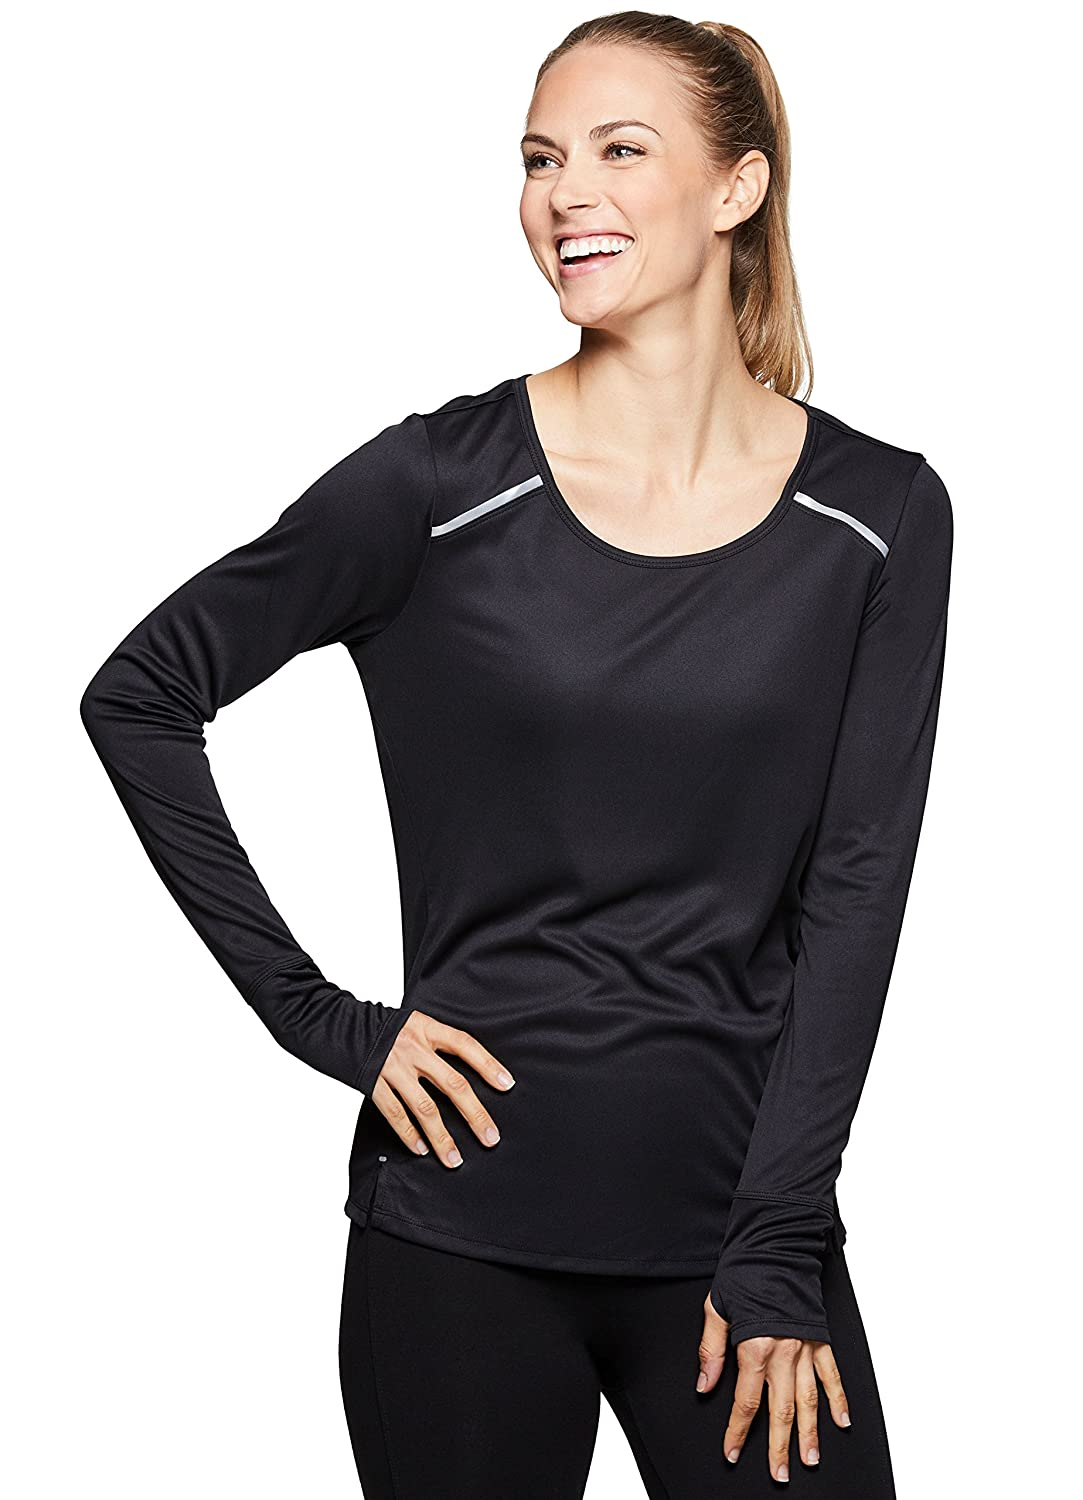 b08f80cc63146 Amazon.com  RBX Active Women s Long Sleeve Ventilated Workout Tee Shirt   Clothing